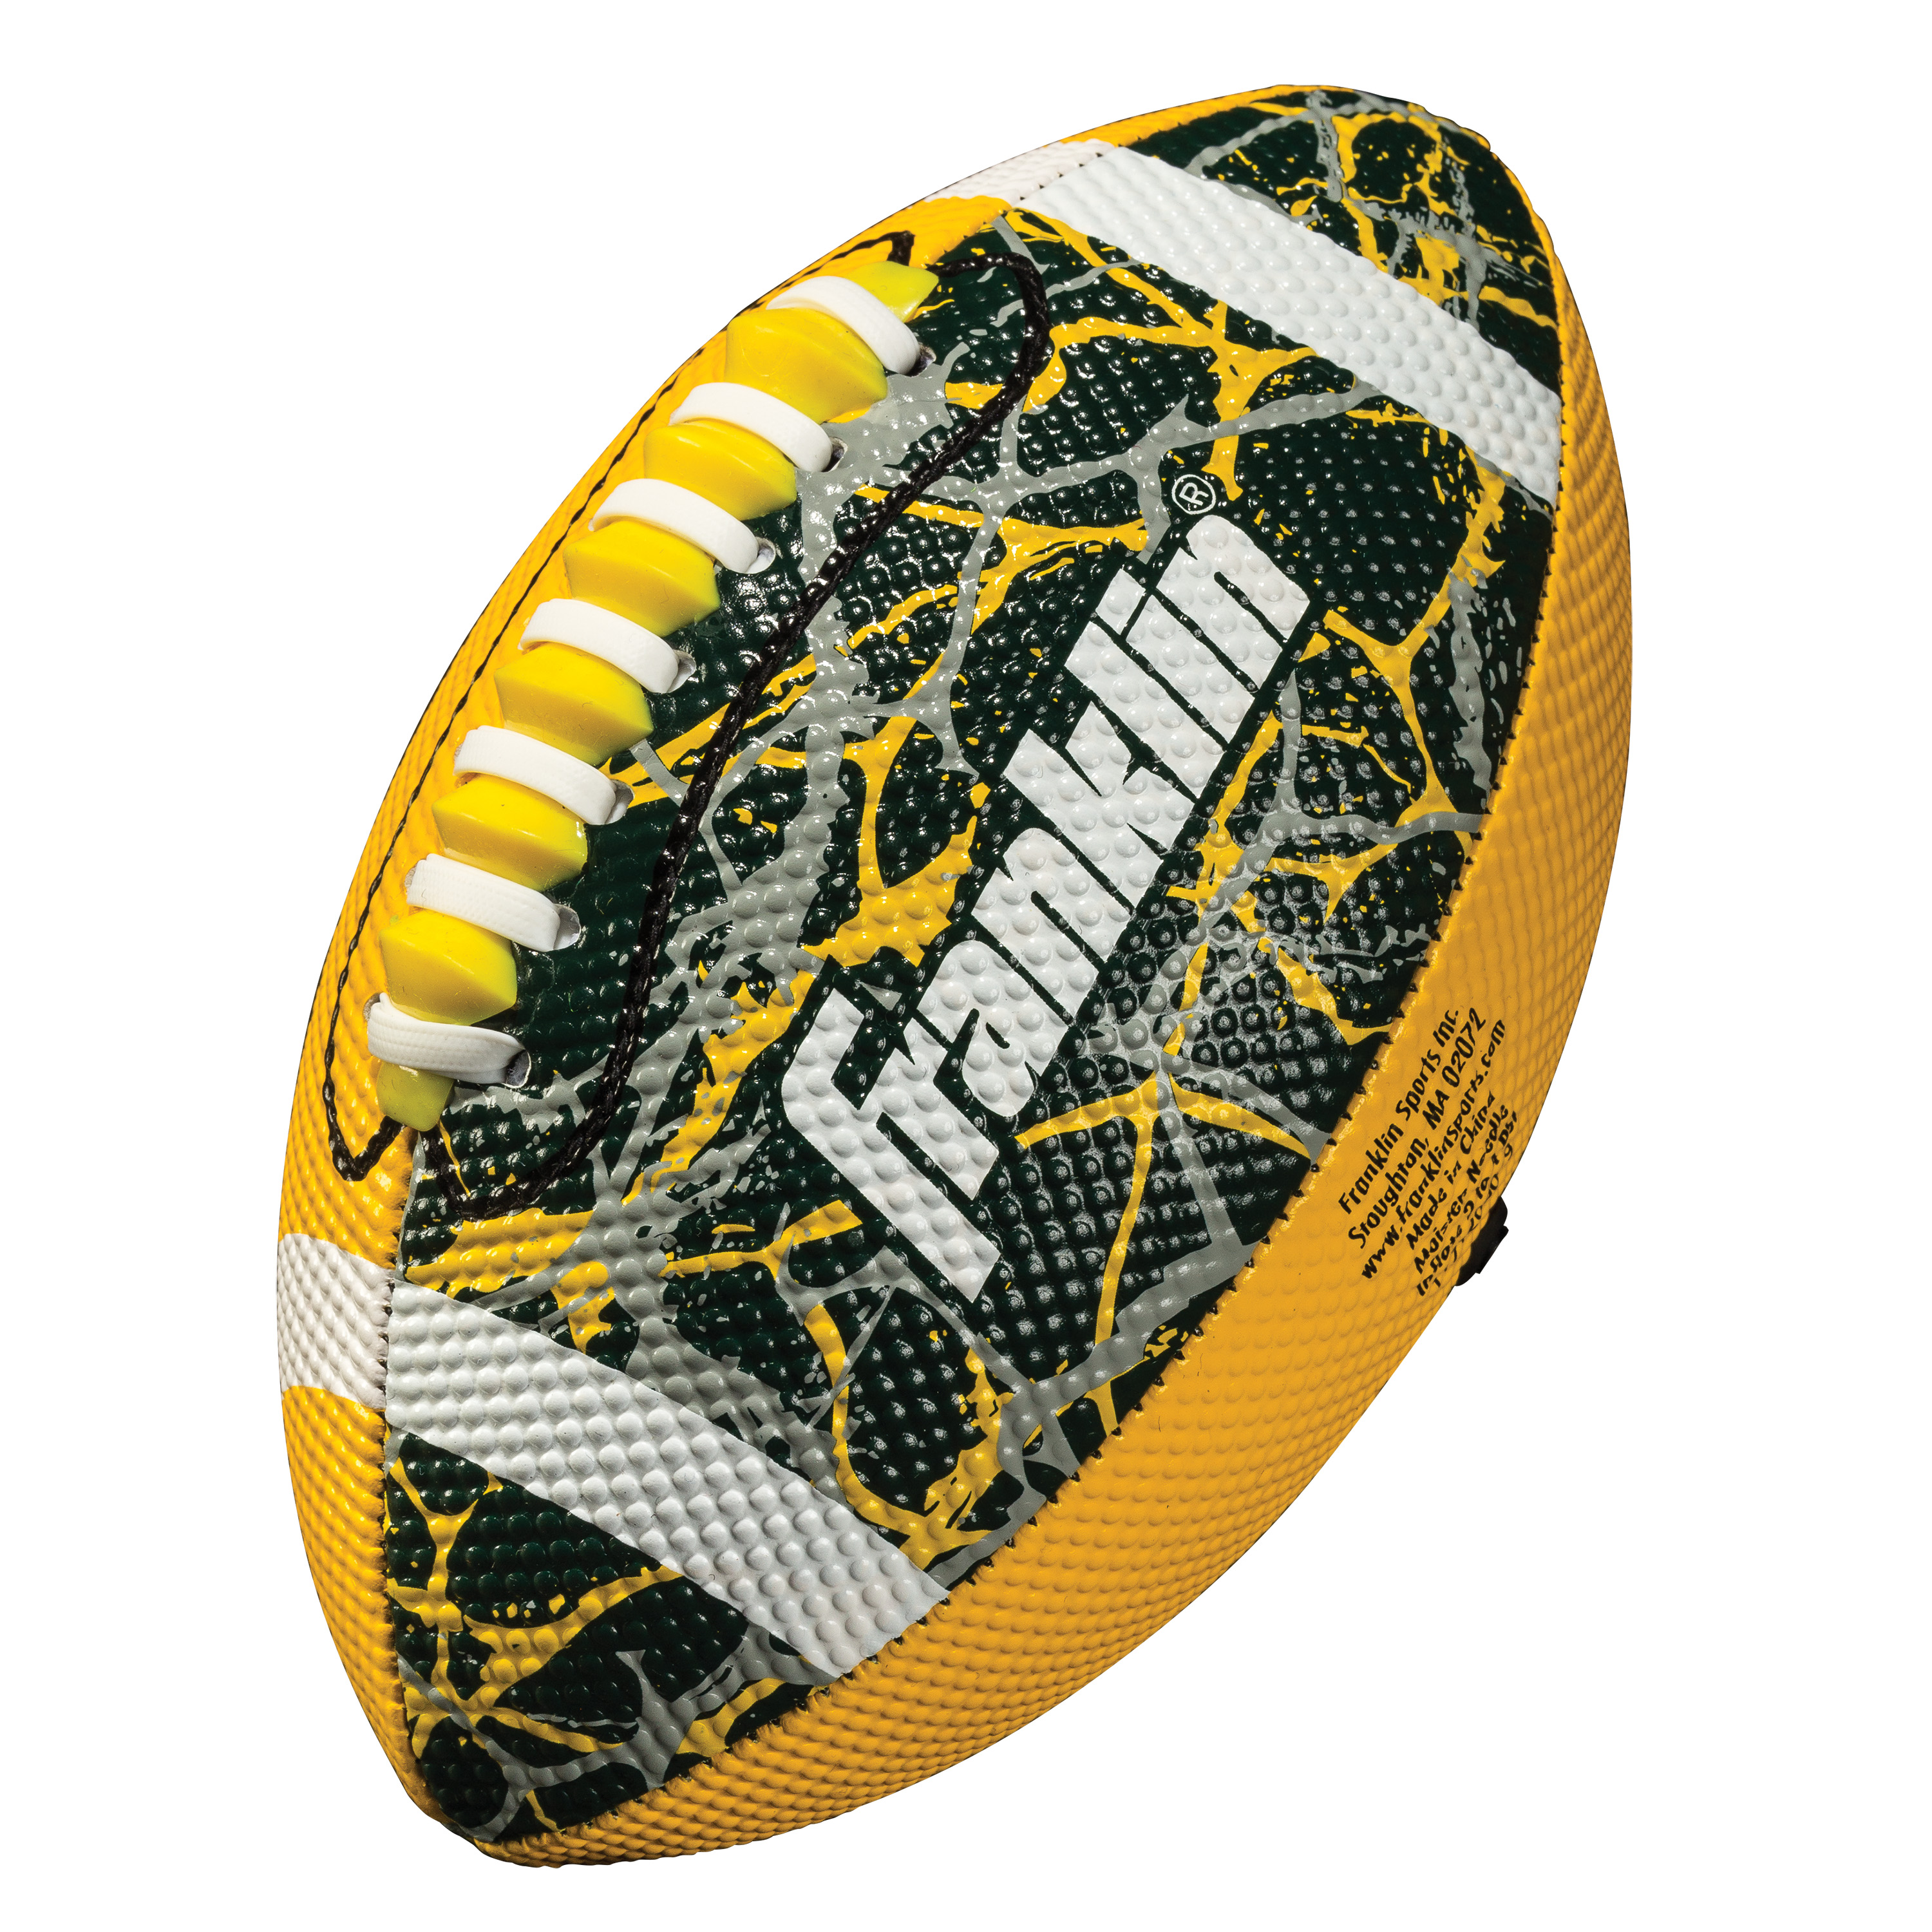 Franklin Sports Team Color Mini Football - Yellow/Green